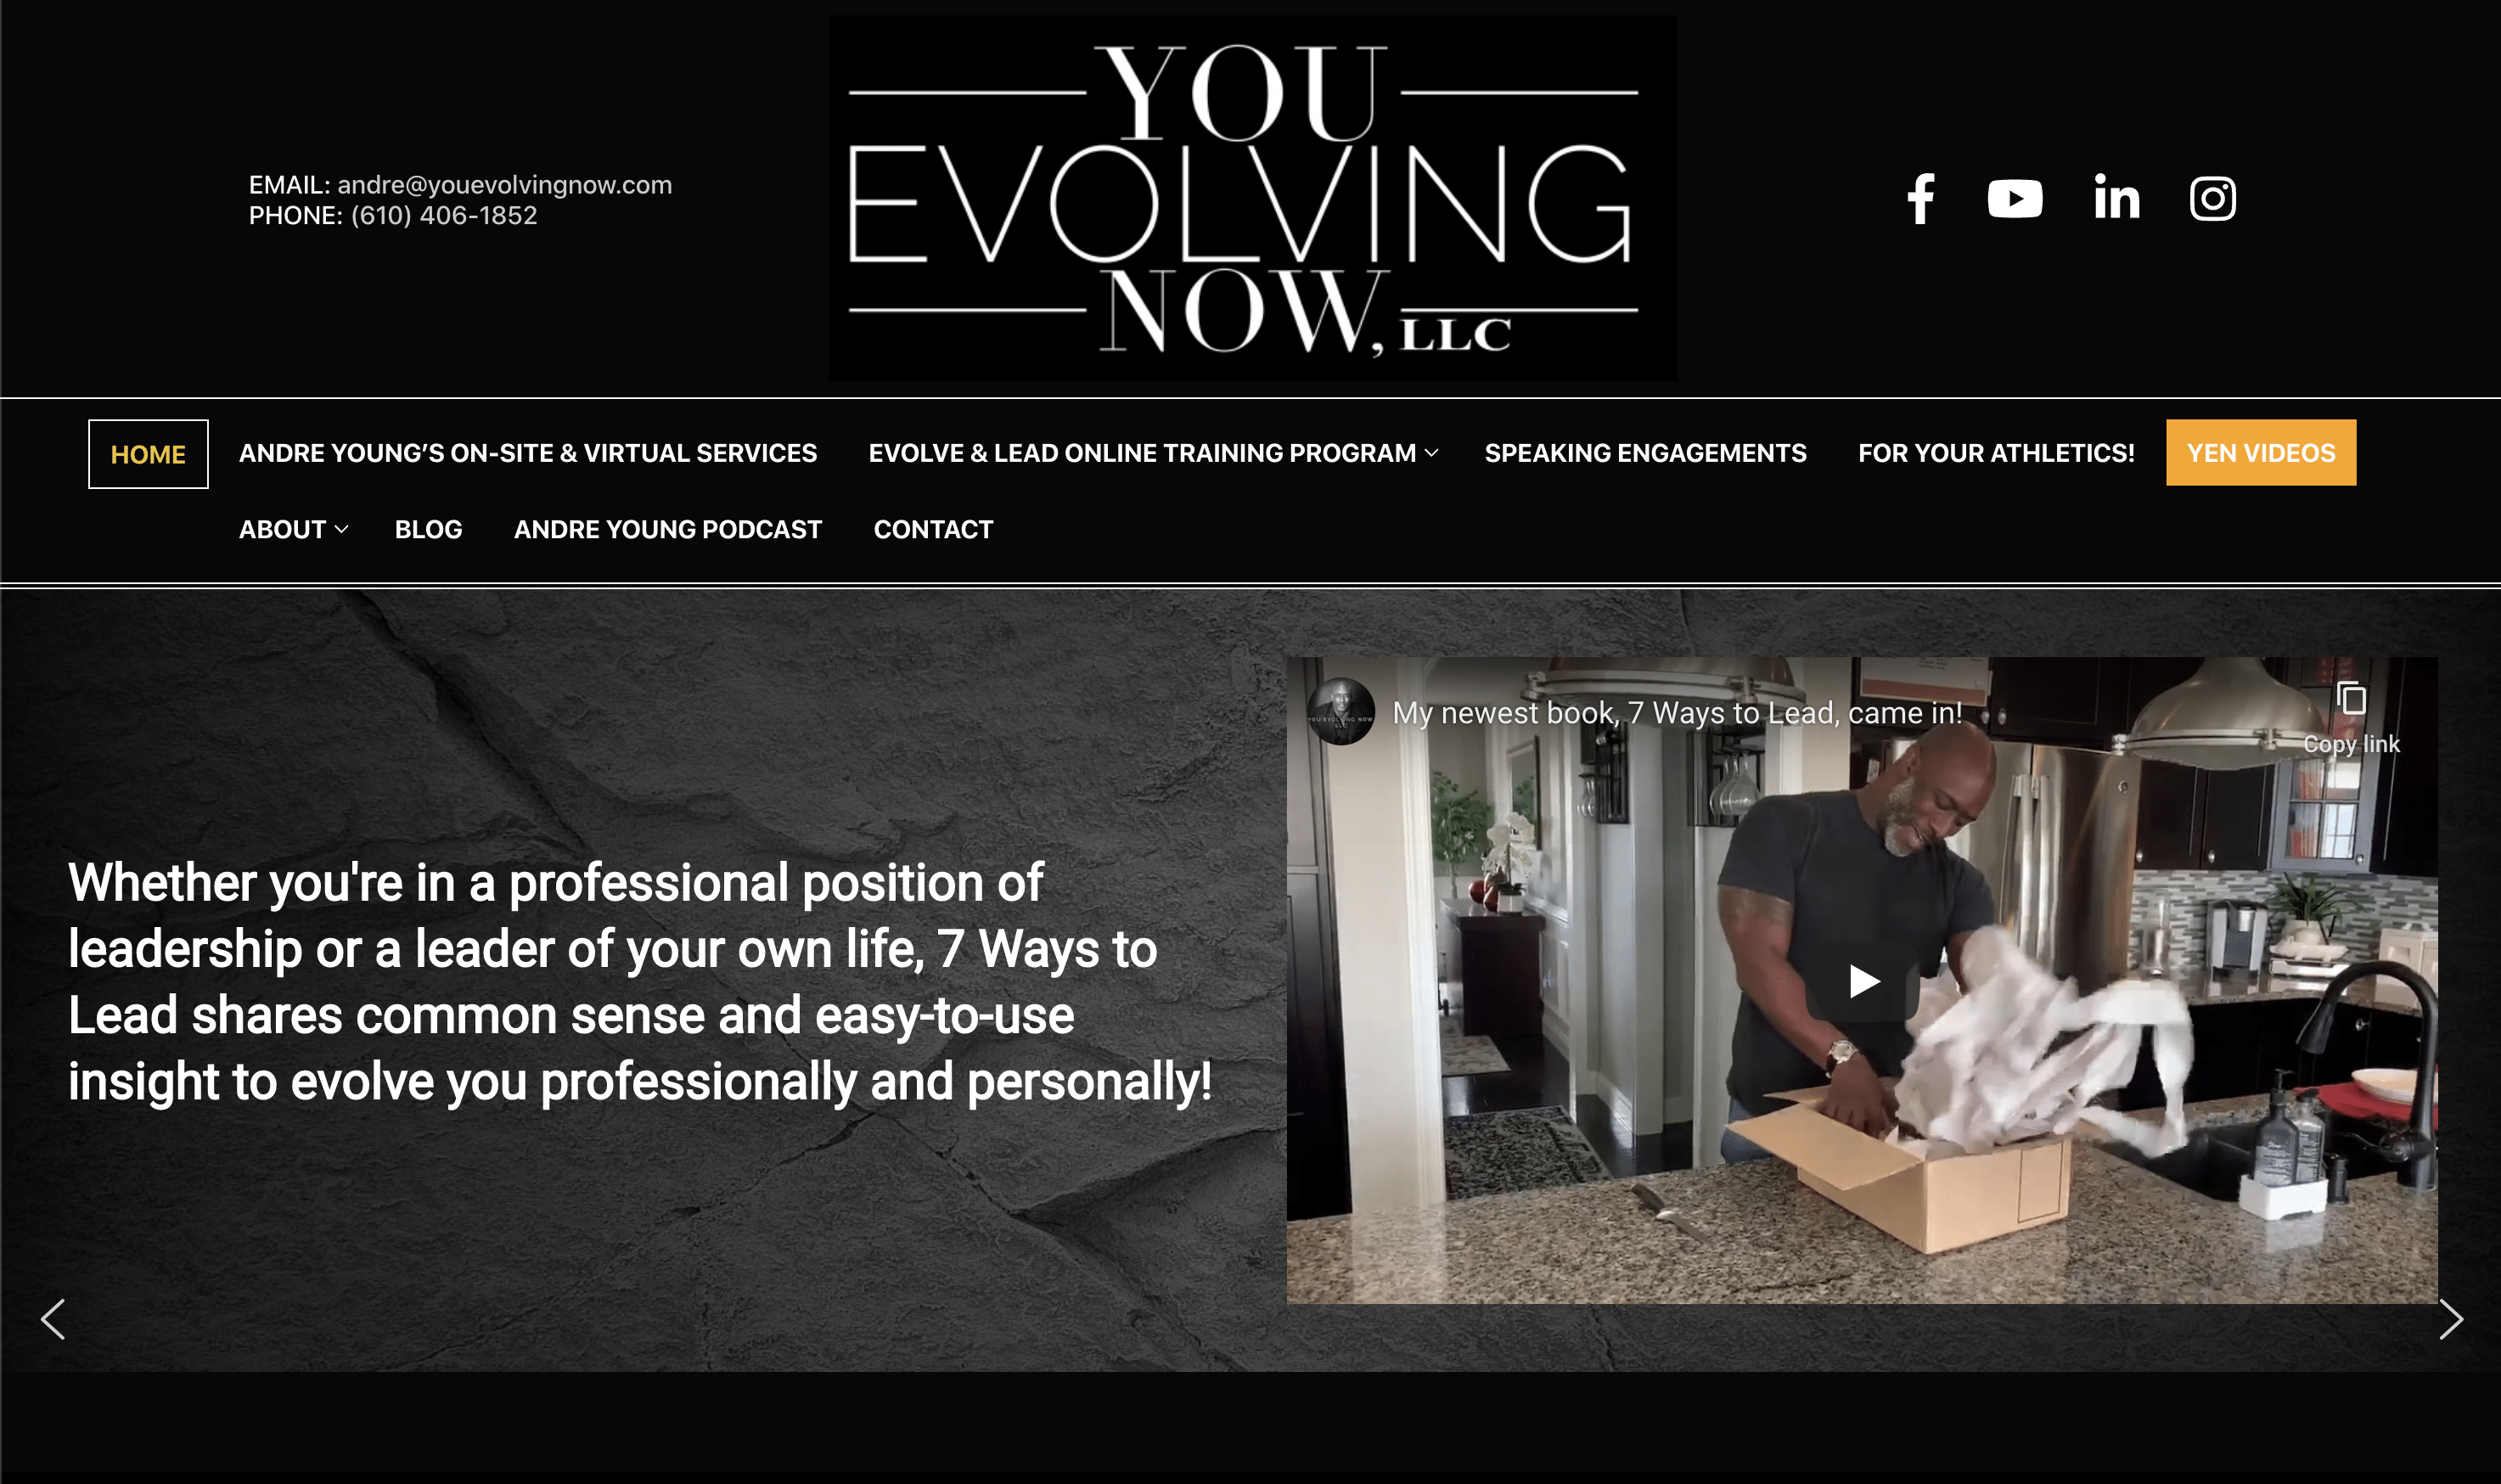 You Evolving Now Designed by goMAaVA, small business marketing company, small business marketing company hamburg pa, small business marketing company wyomissing pa, small business marketing company allentown pa, small business marketing company schuylkill pa, website design , website design hamburg pa, website design allentown pa, website design wyomissing pa, website design schuylkill pa, marketing hamburg pa, marketing wyomissing pa, marketing allentown pa, marketing schuylkill pa, virtual assistance , virtual assistance hamburg pa, virtual assistance wyomissing pa, virtual assistance allentown pa, virtual assistance schuylkill pa, graphic design, graphic design hamburg pa, graphic design wyomissing pa, graphic design allentown pa, graphic design schuylkill pa, print marketing hamburg pa, print marketing wyomissing pa, print marketing allentown pa, print marketing schuylkill pa, brochure printing hamburg pa, brochure printing wyomissing pa, brochure printing allentown pa, brochure printing schuylkill pa, advertisements hamburg pa, advertisements wyomissing pa, advertisements allentown pa, advertisements schuylkill pa, website maintenance, website maintenance hamburg pa, website maintenance wyomissing pa, website maintenance allentown pa, website maintenance schuylkill pa, social media marketing small business, social media marketing small business hamburg pa, social media marketing small business wyomissing pa, social media marketing small business allentown pa, social media marketing small business schuylkill pa, constant contact marketing, constant contact marketing hamburg pa, constant contact marketing wyomissing pa, constant contact marketing allentown pa, constant contact marketing schuylkill pa, email marketing, email marketing hamburg pa, email marketing wyomissing pa, email marketing allentown pa, email marketing schuylkill pa, marketing assistance, marketing assistance hamburg pa, marketing assistance wyomissing pa, marketing assistance allentown pa, mar